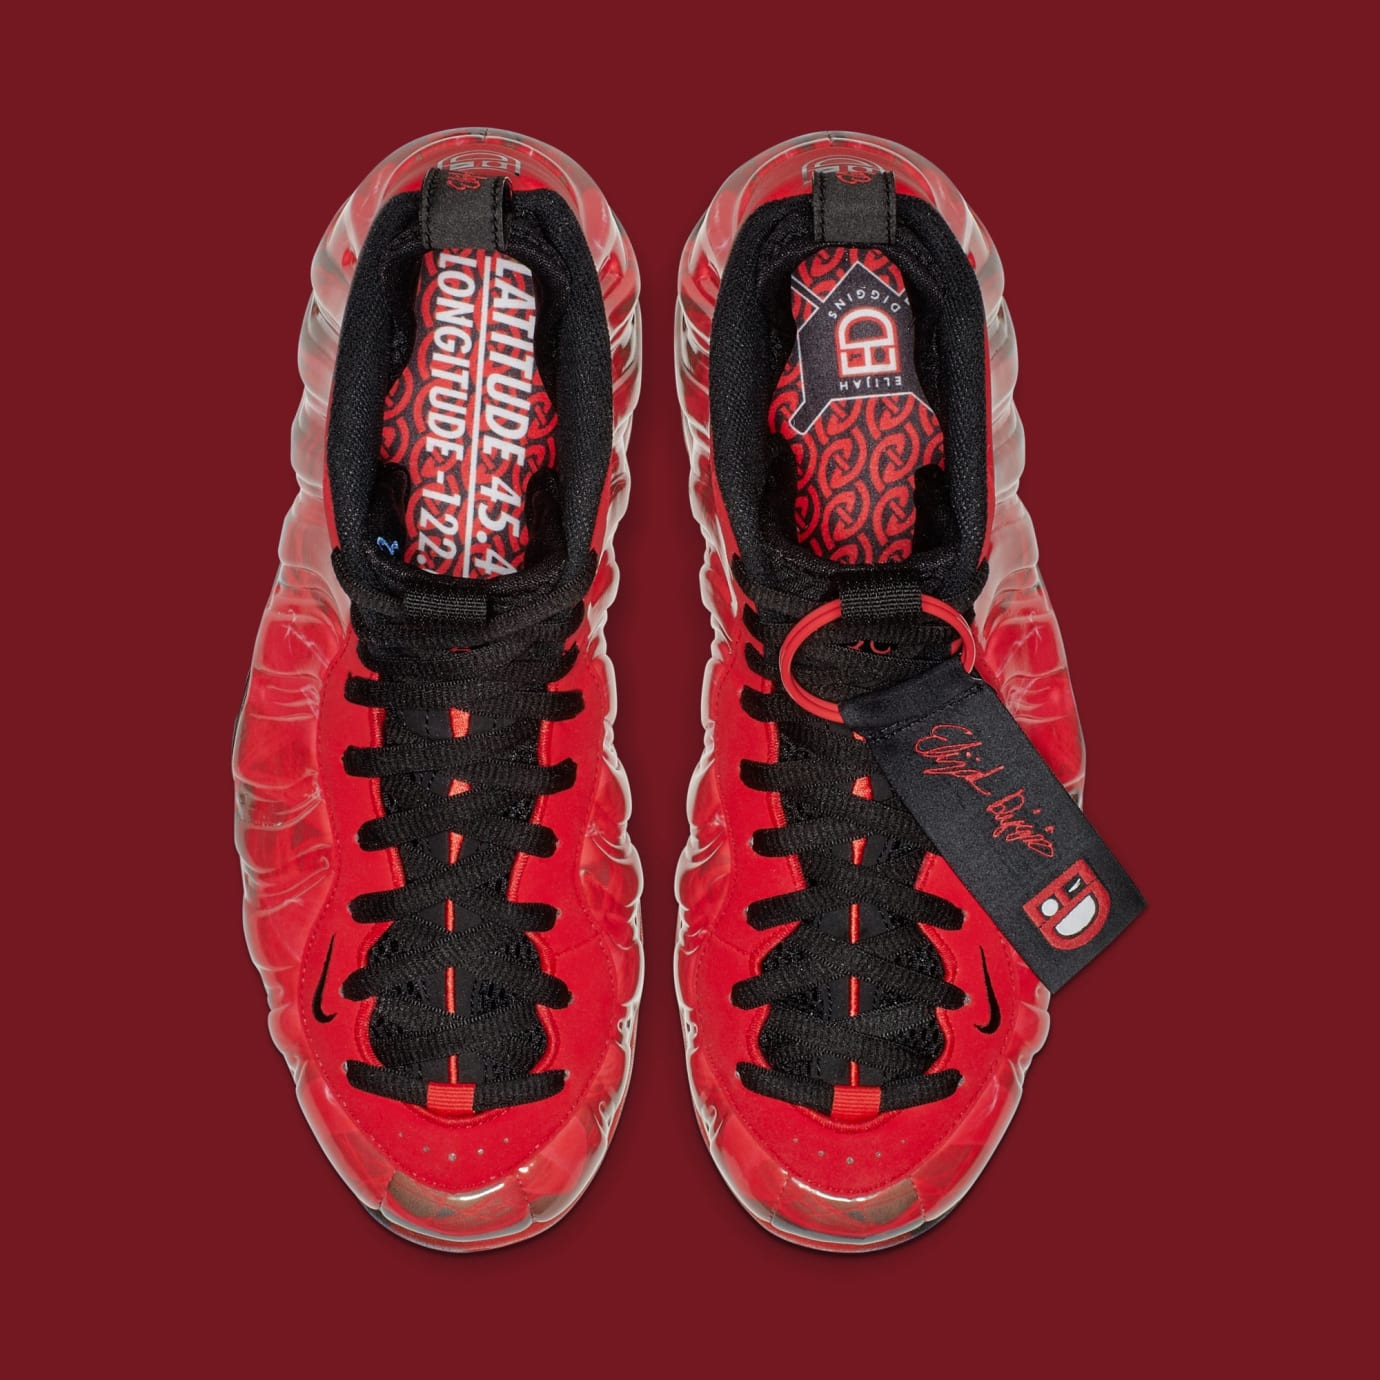 c77b4a10bc4edb Image via Nike Nike Air Foamposite One  Doernbecher  Challenge Red Black  641745-600 (Top